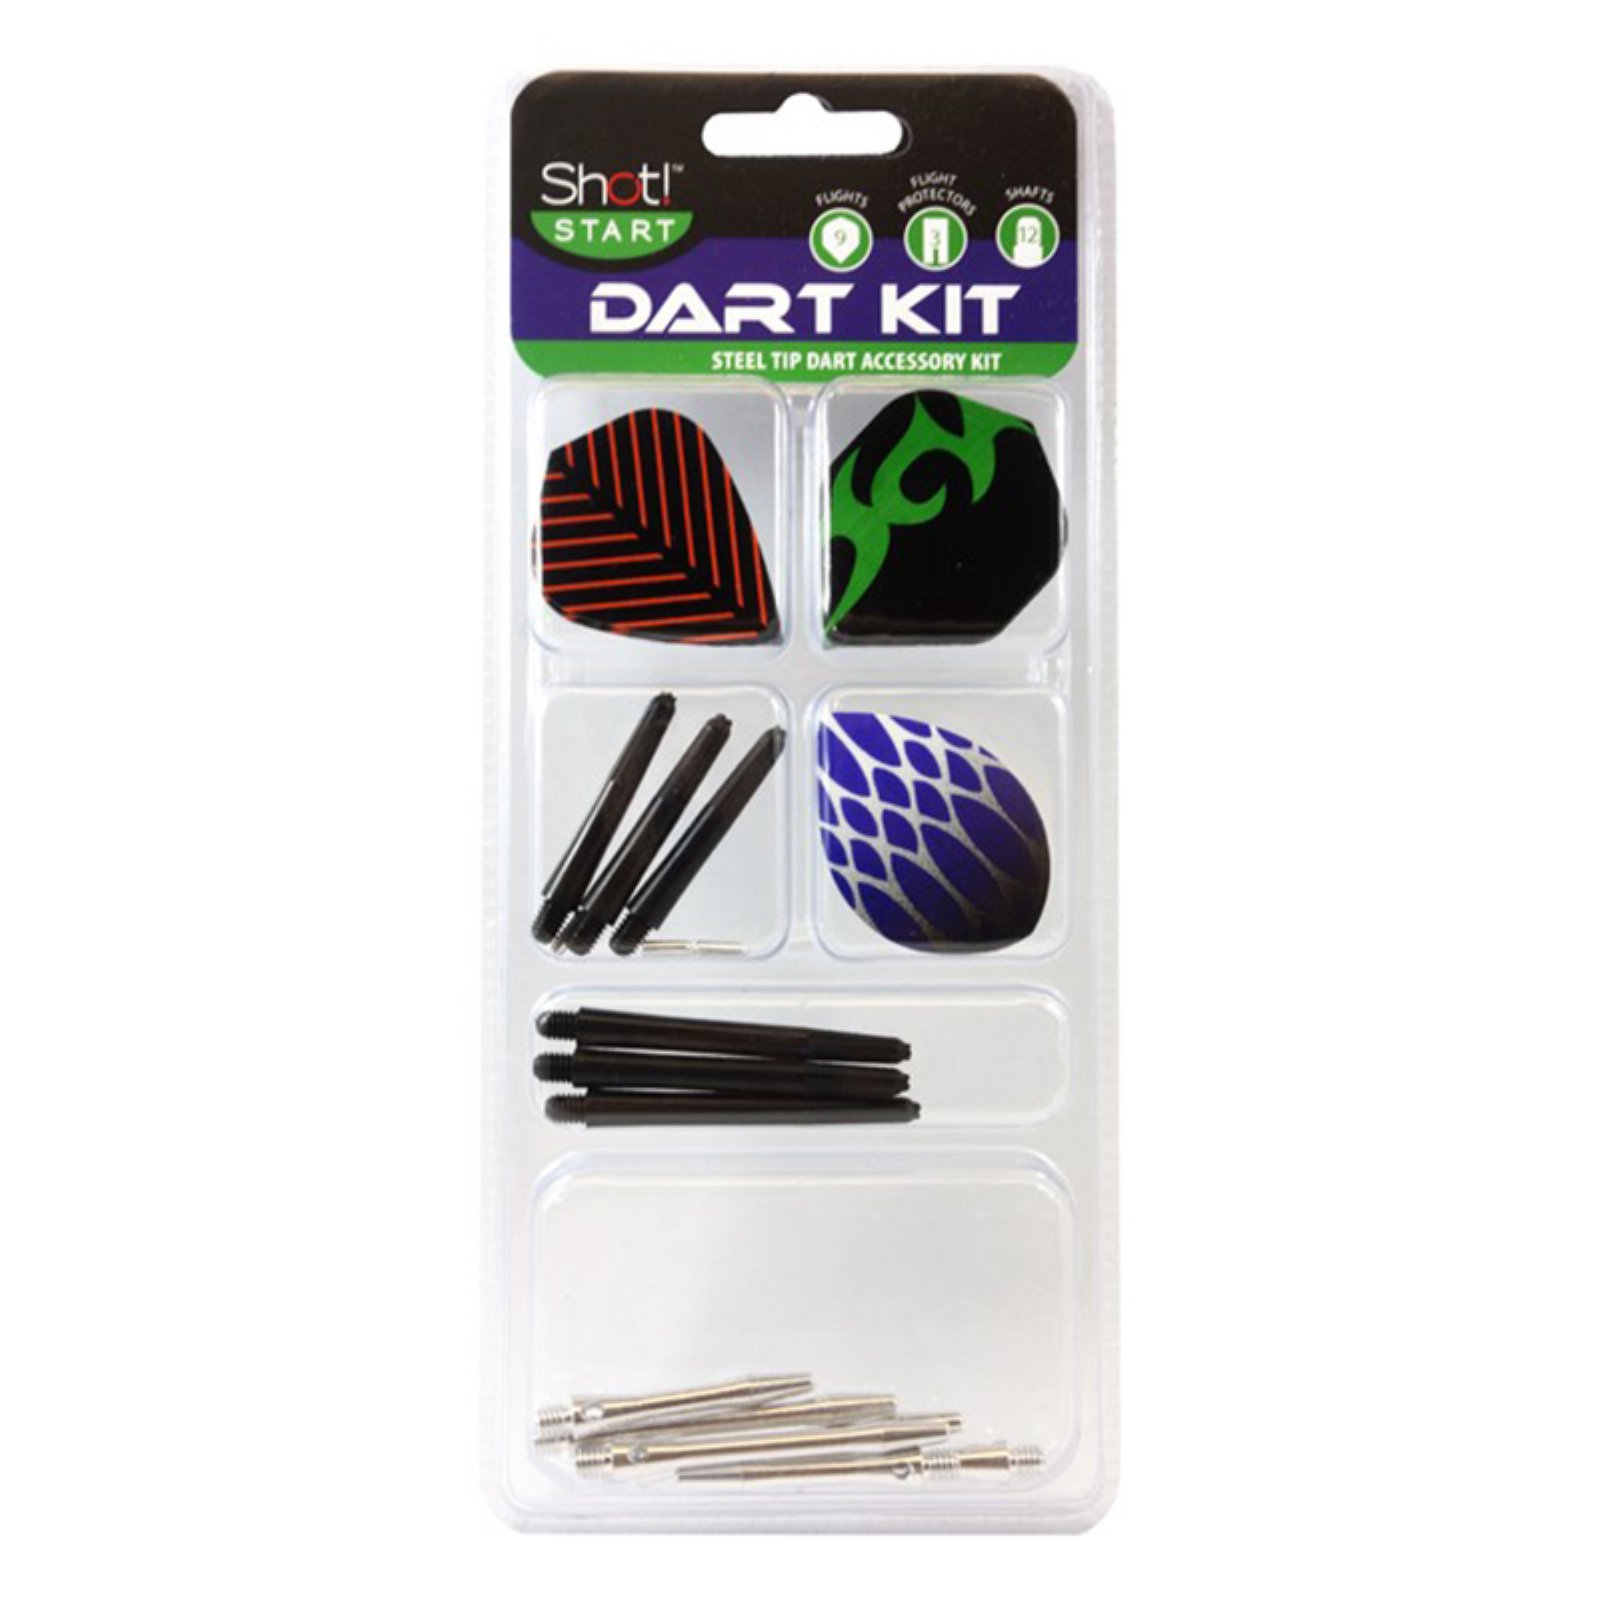 Shot Darts Dart Accessory Kit